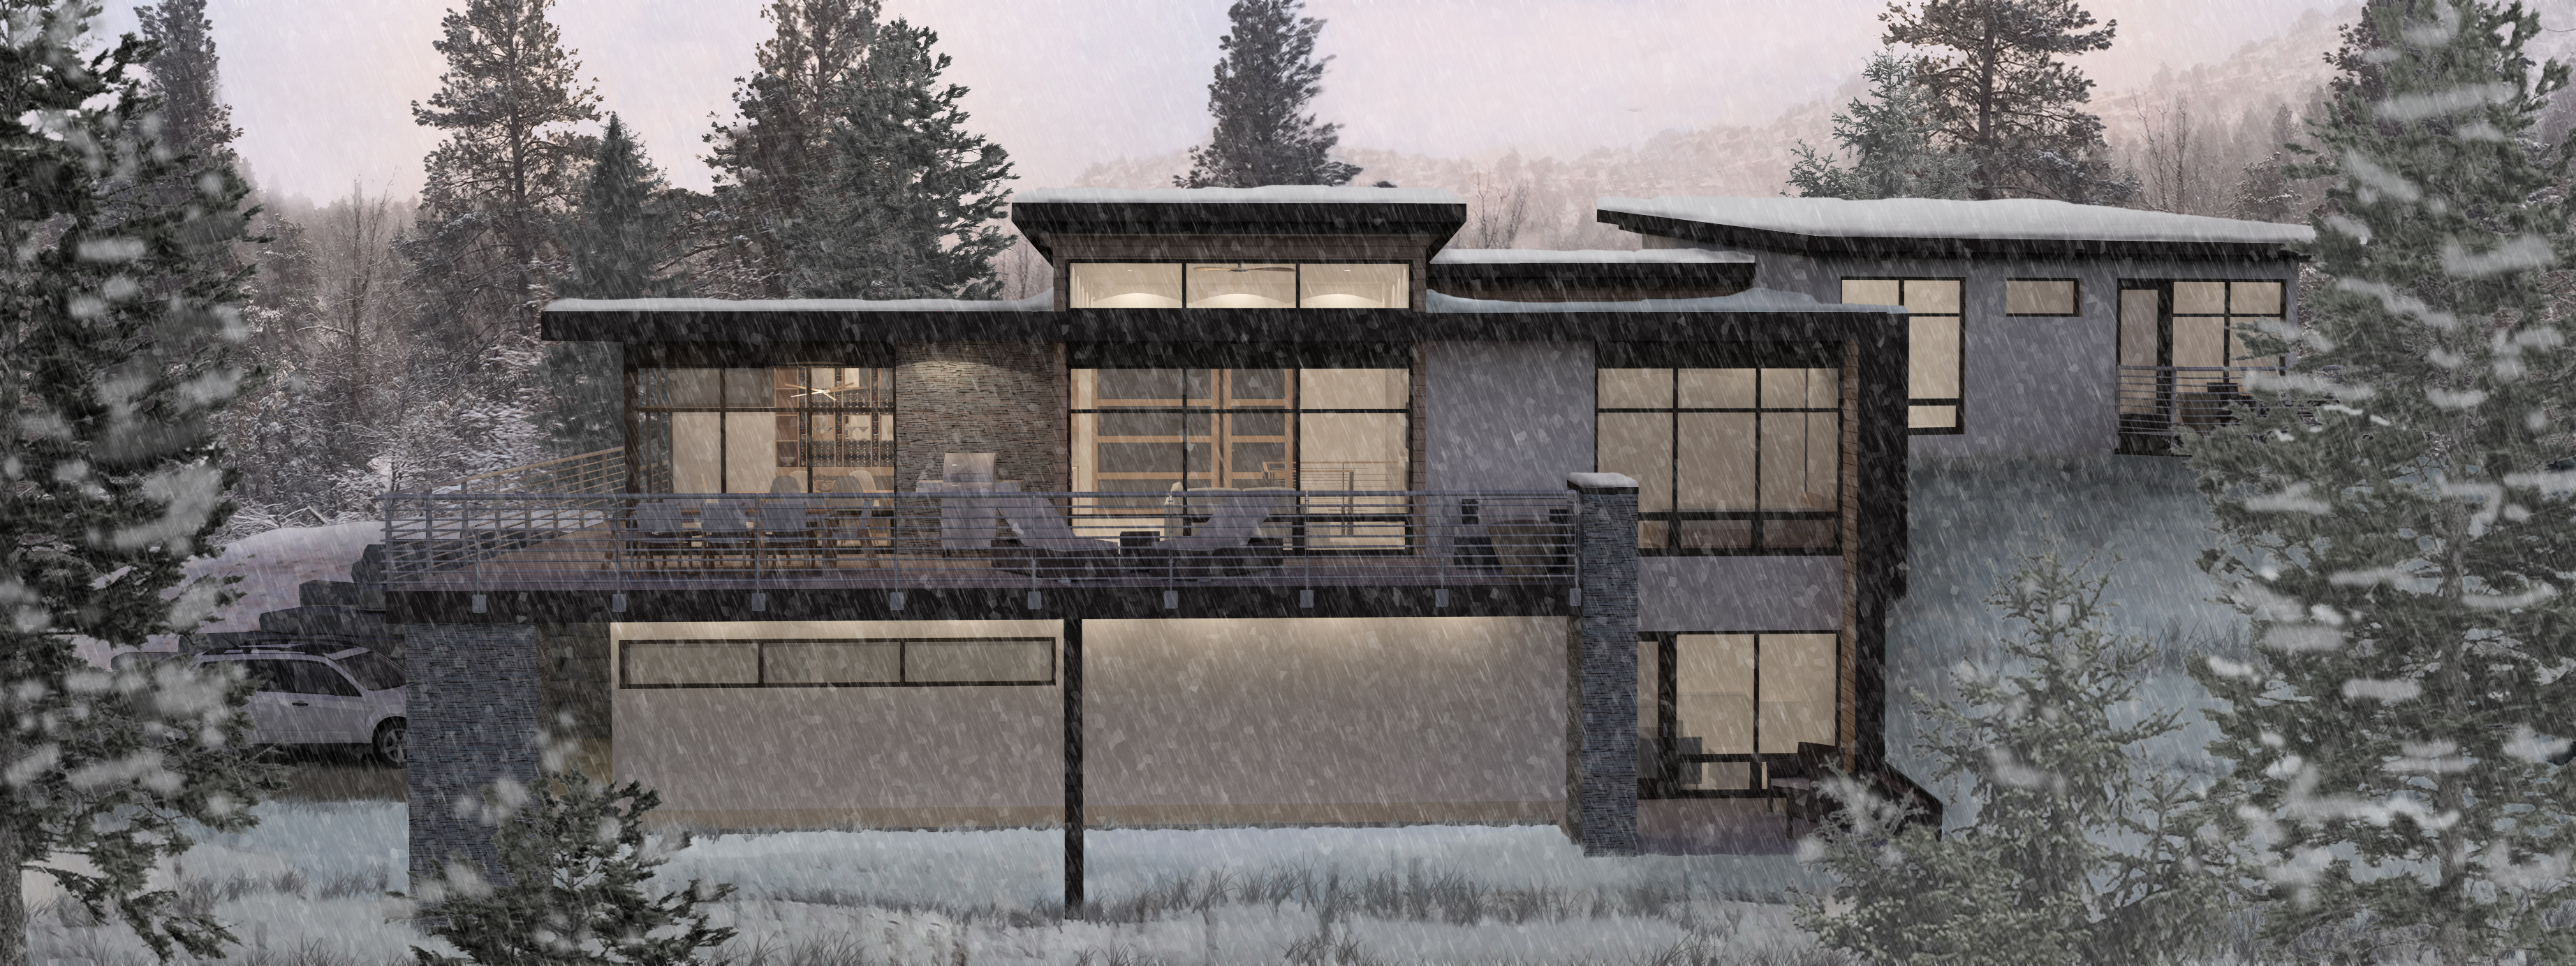 EastView-Rendering-Night